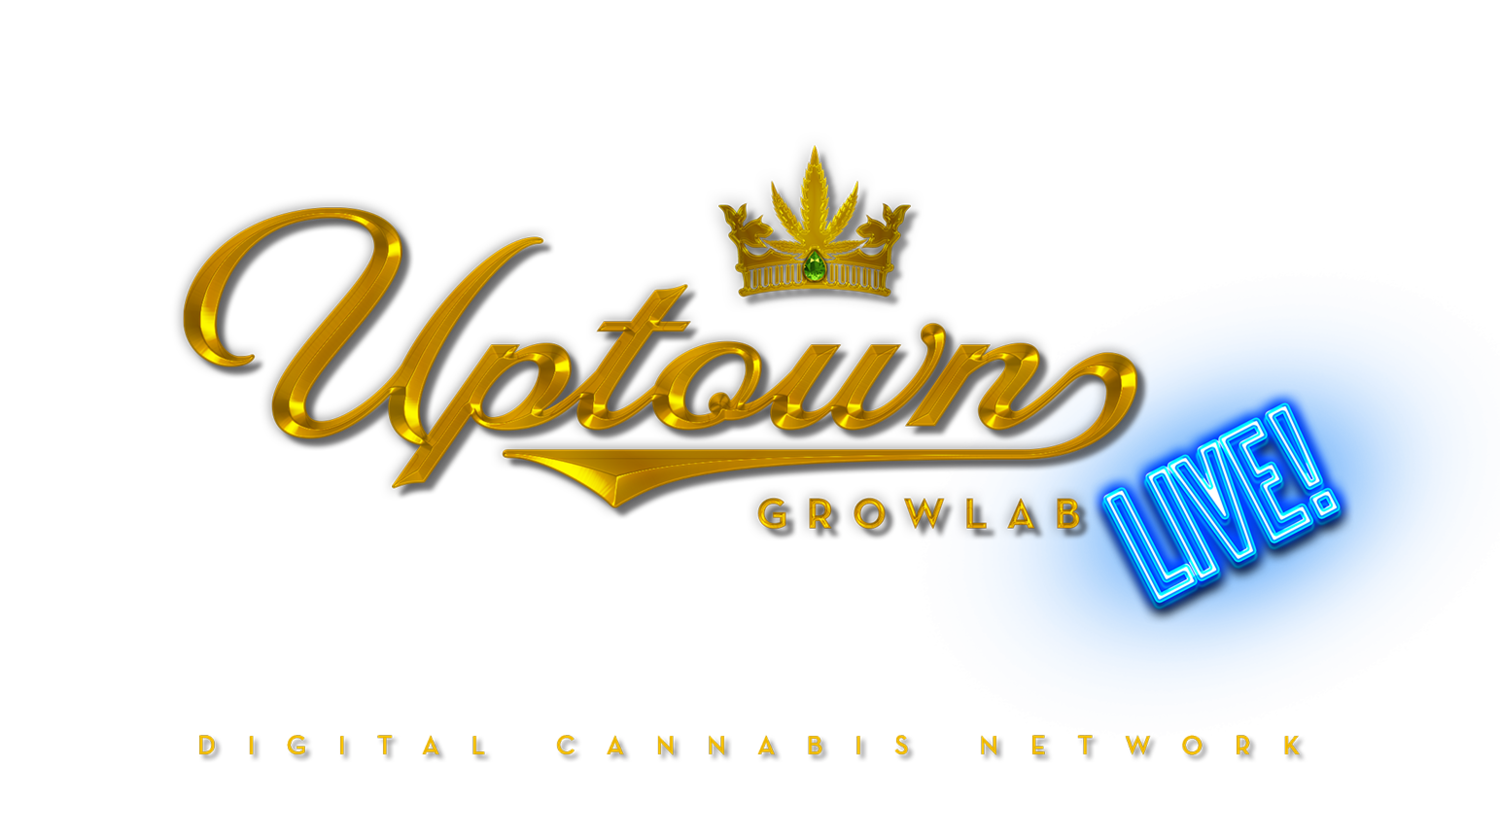 Uptown Growlab Live - Digital Cannabis Network and Streaming Show